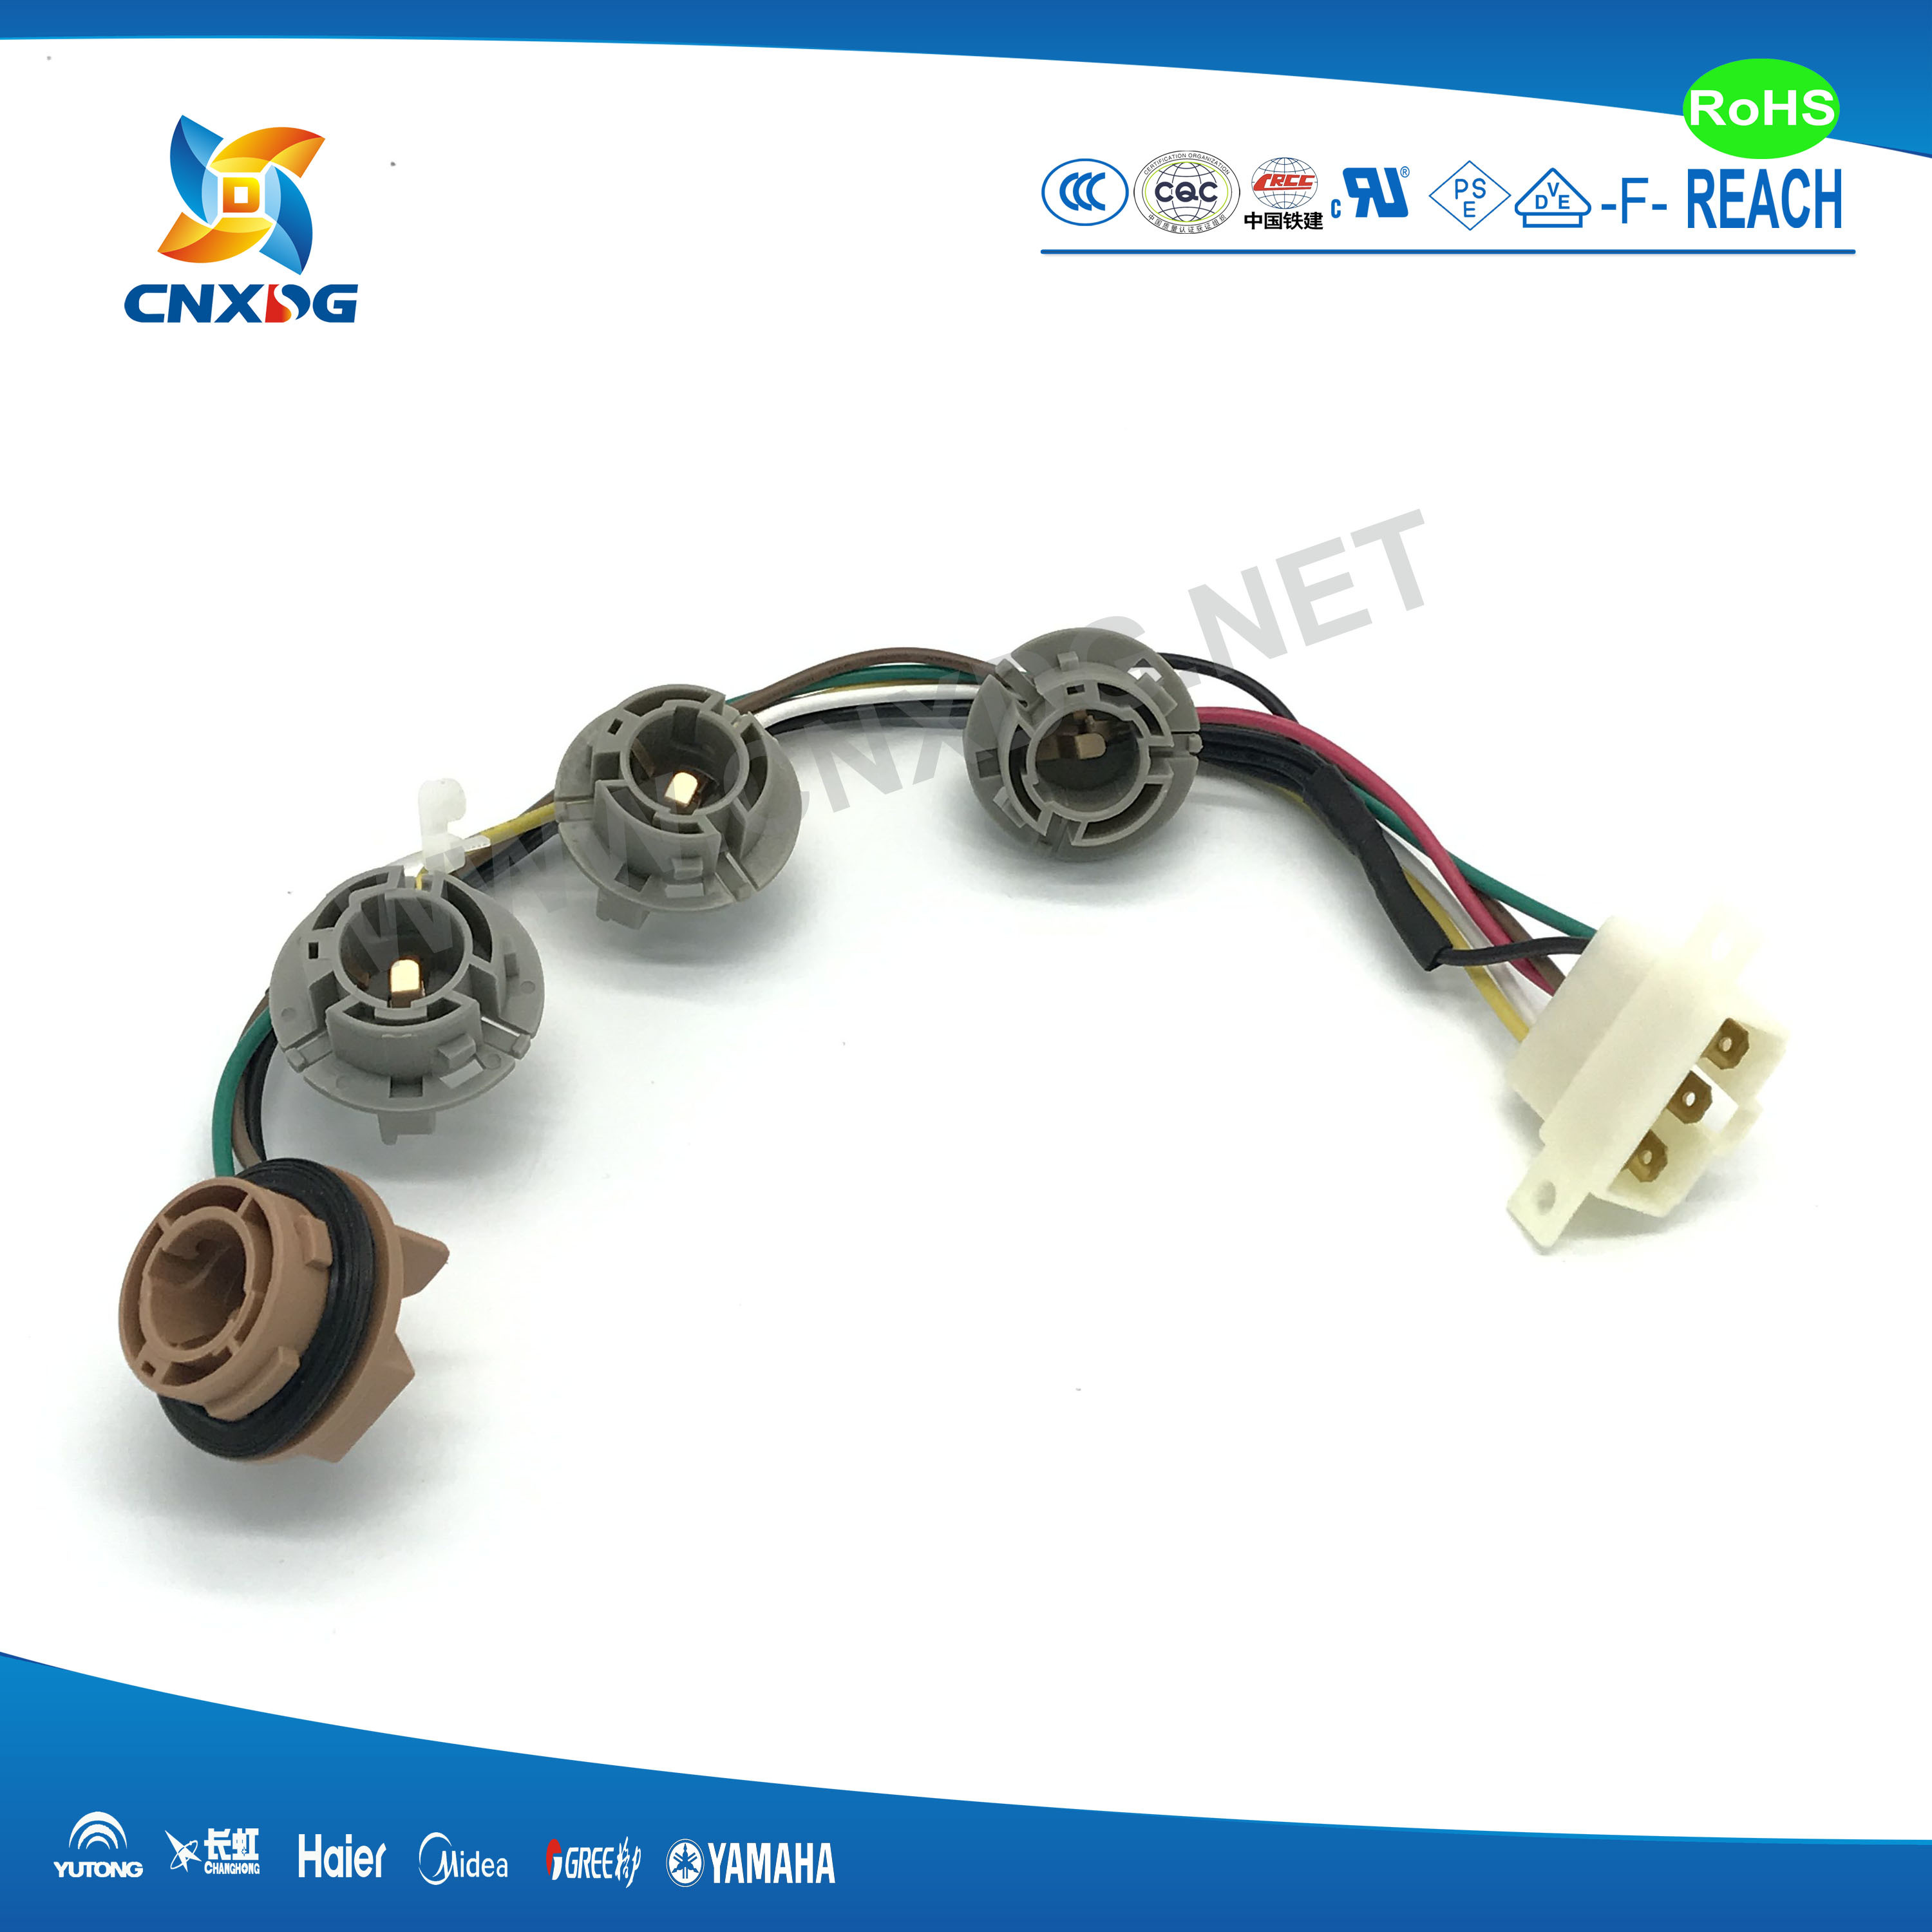 China Wire Harness for Automobile Motorcycle4 - China Wire Harnes, Cable  Harness